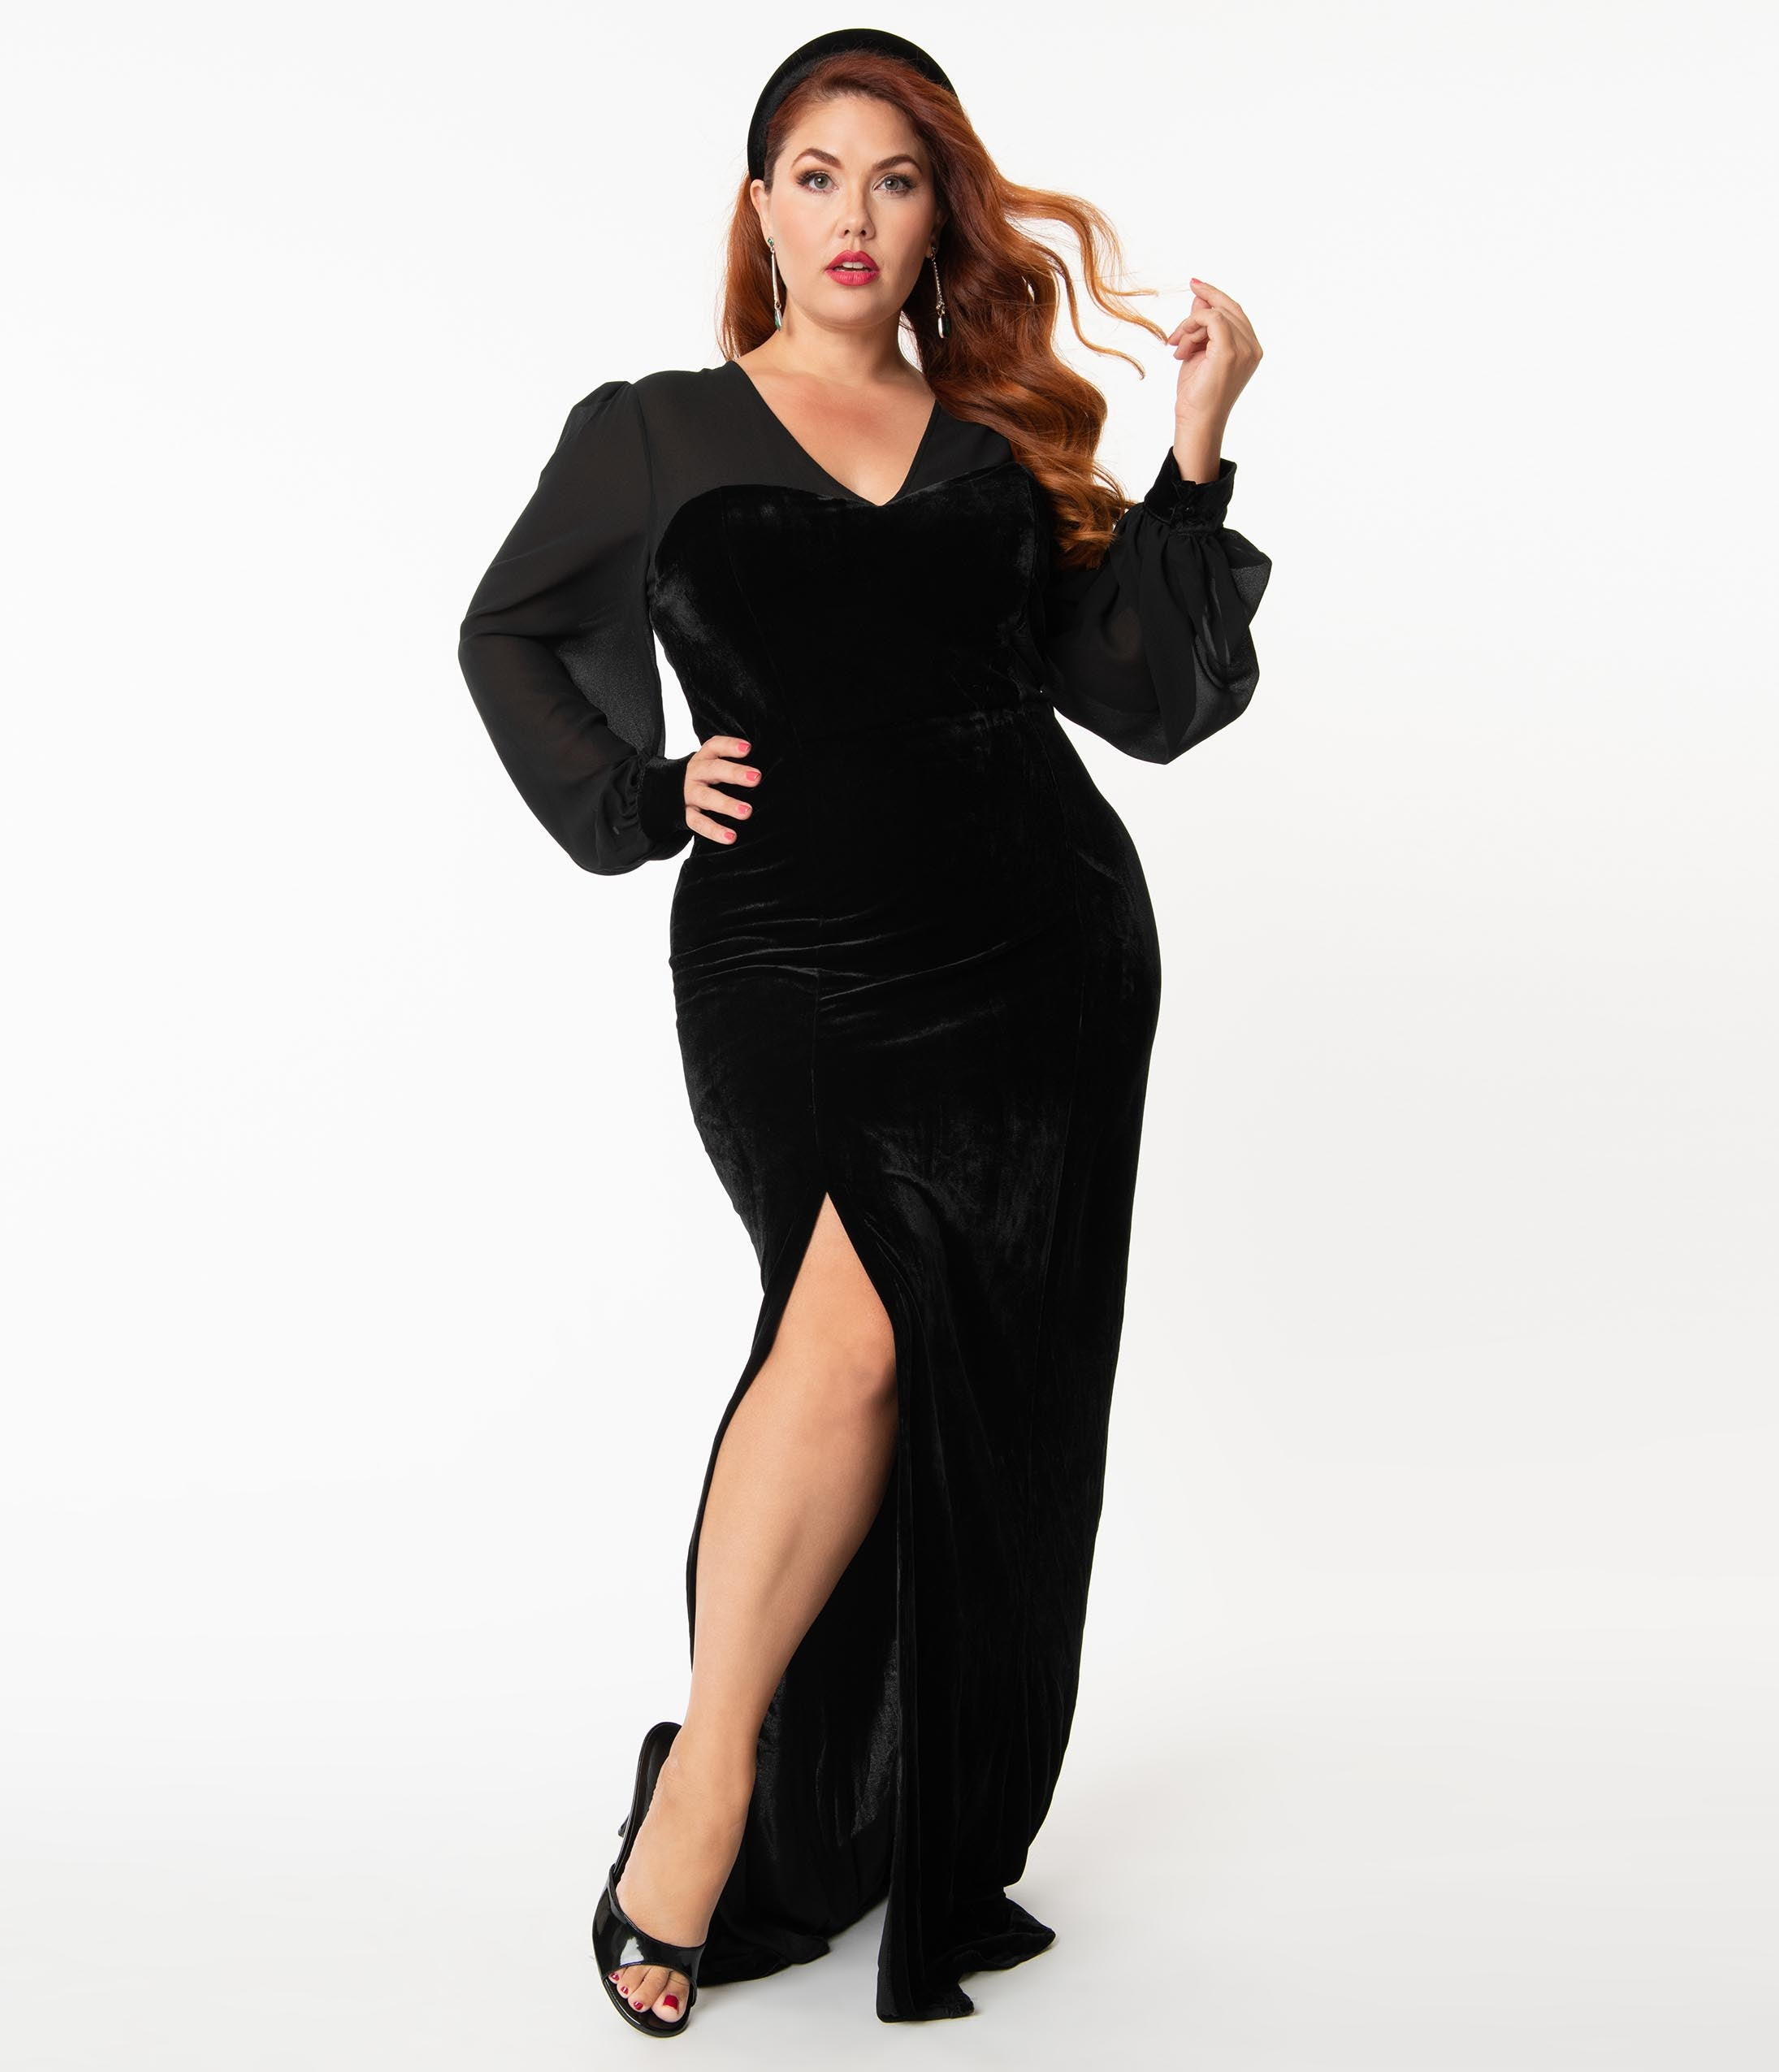 1950s Style Clothing & Fashion Collectif Plus Size Black Velvet Arionna Fitted Gown $102.00 AT vintagedancer.com